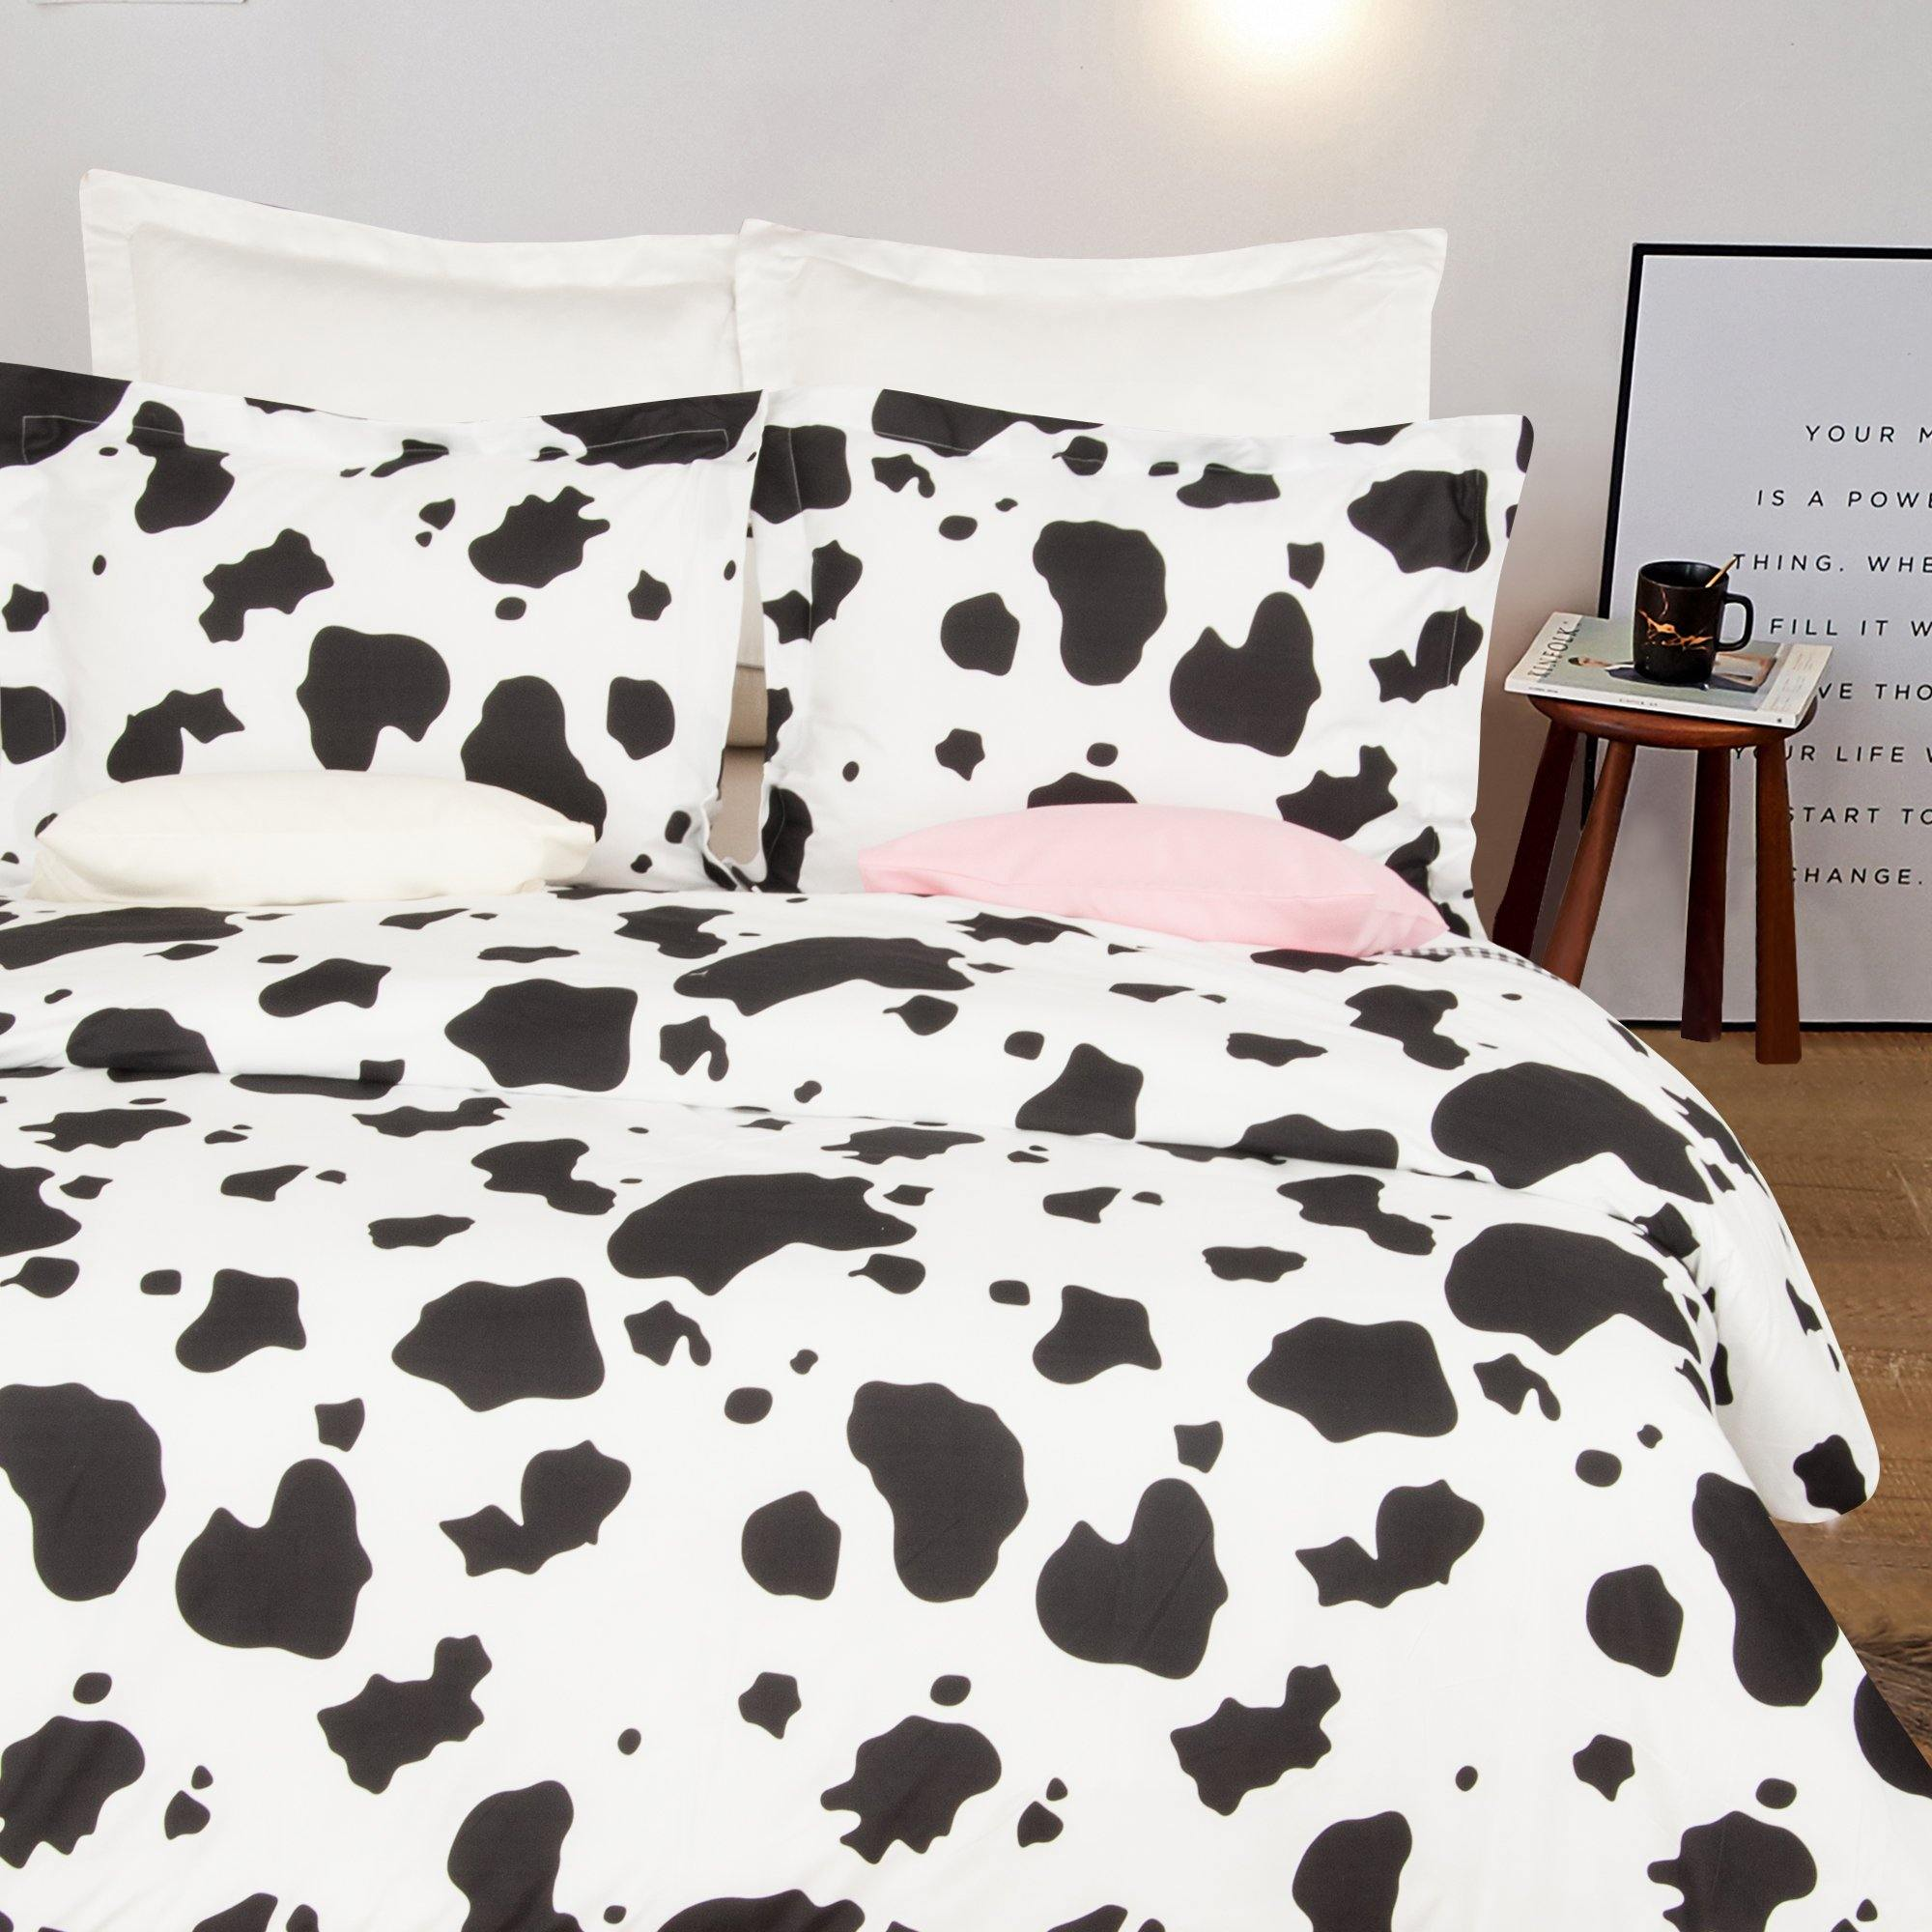 Microfiber Black And White Bedding Duvet Cover Set Ntbay Pattern Spotted Cow